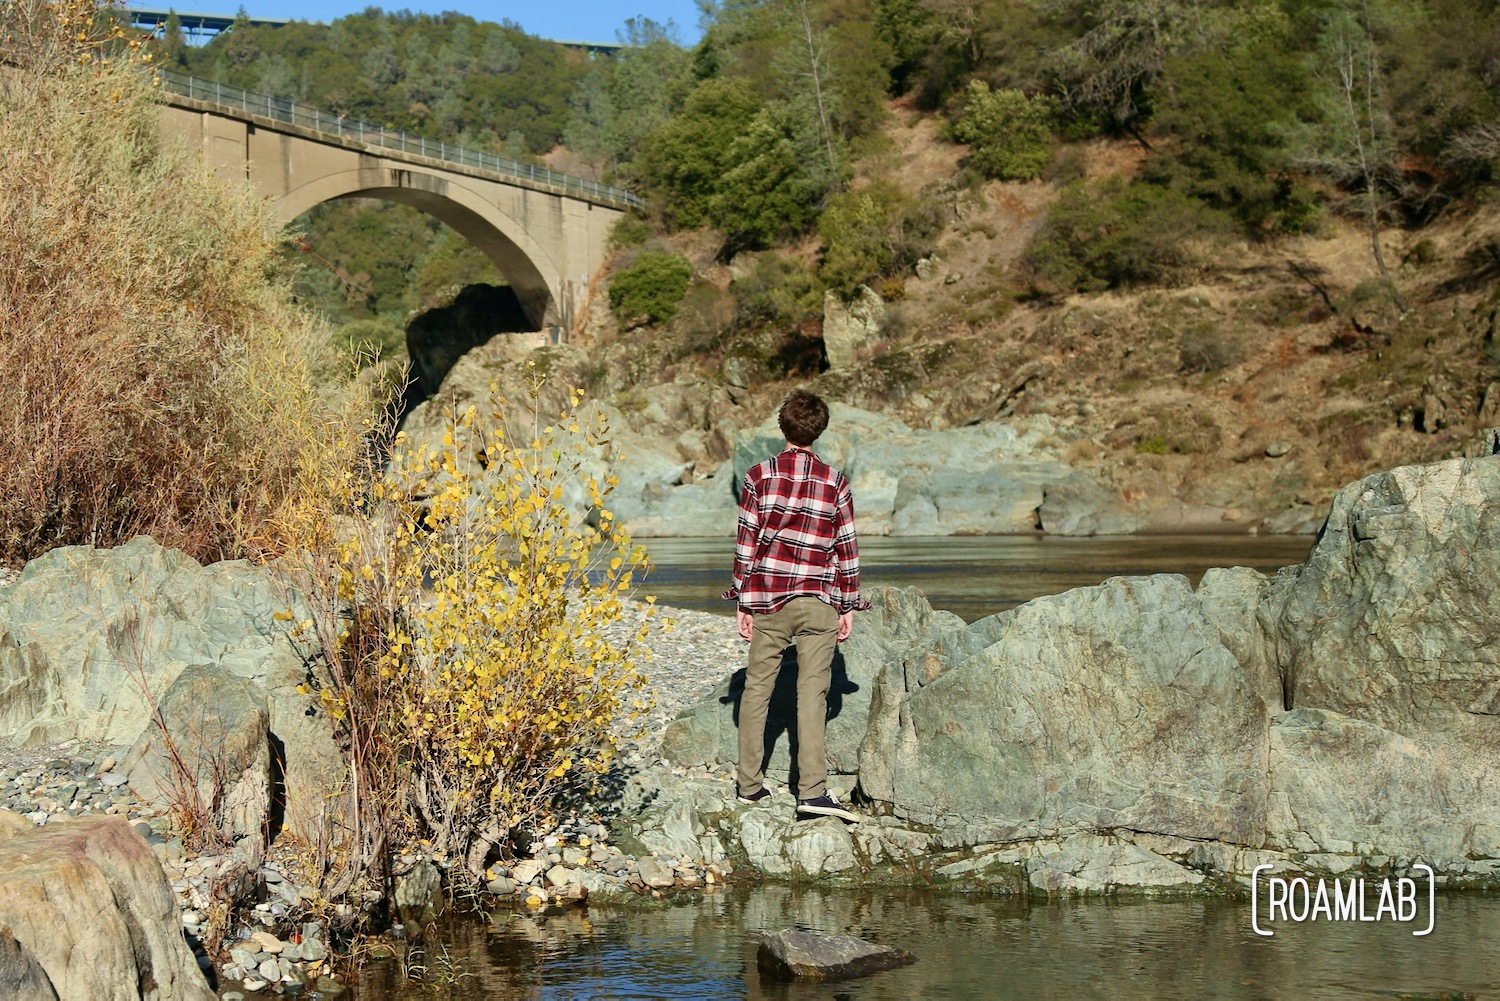 No Hands Bridge off highway 49 is a hiking destination crossing the North Fork of the American River in the California's Auburn State Recreation Area.